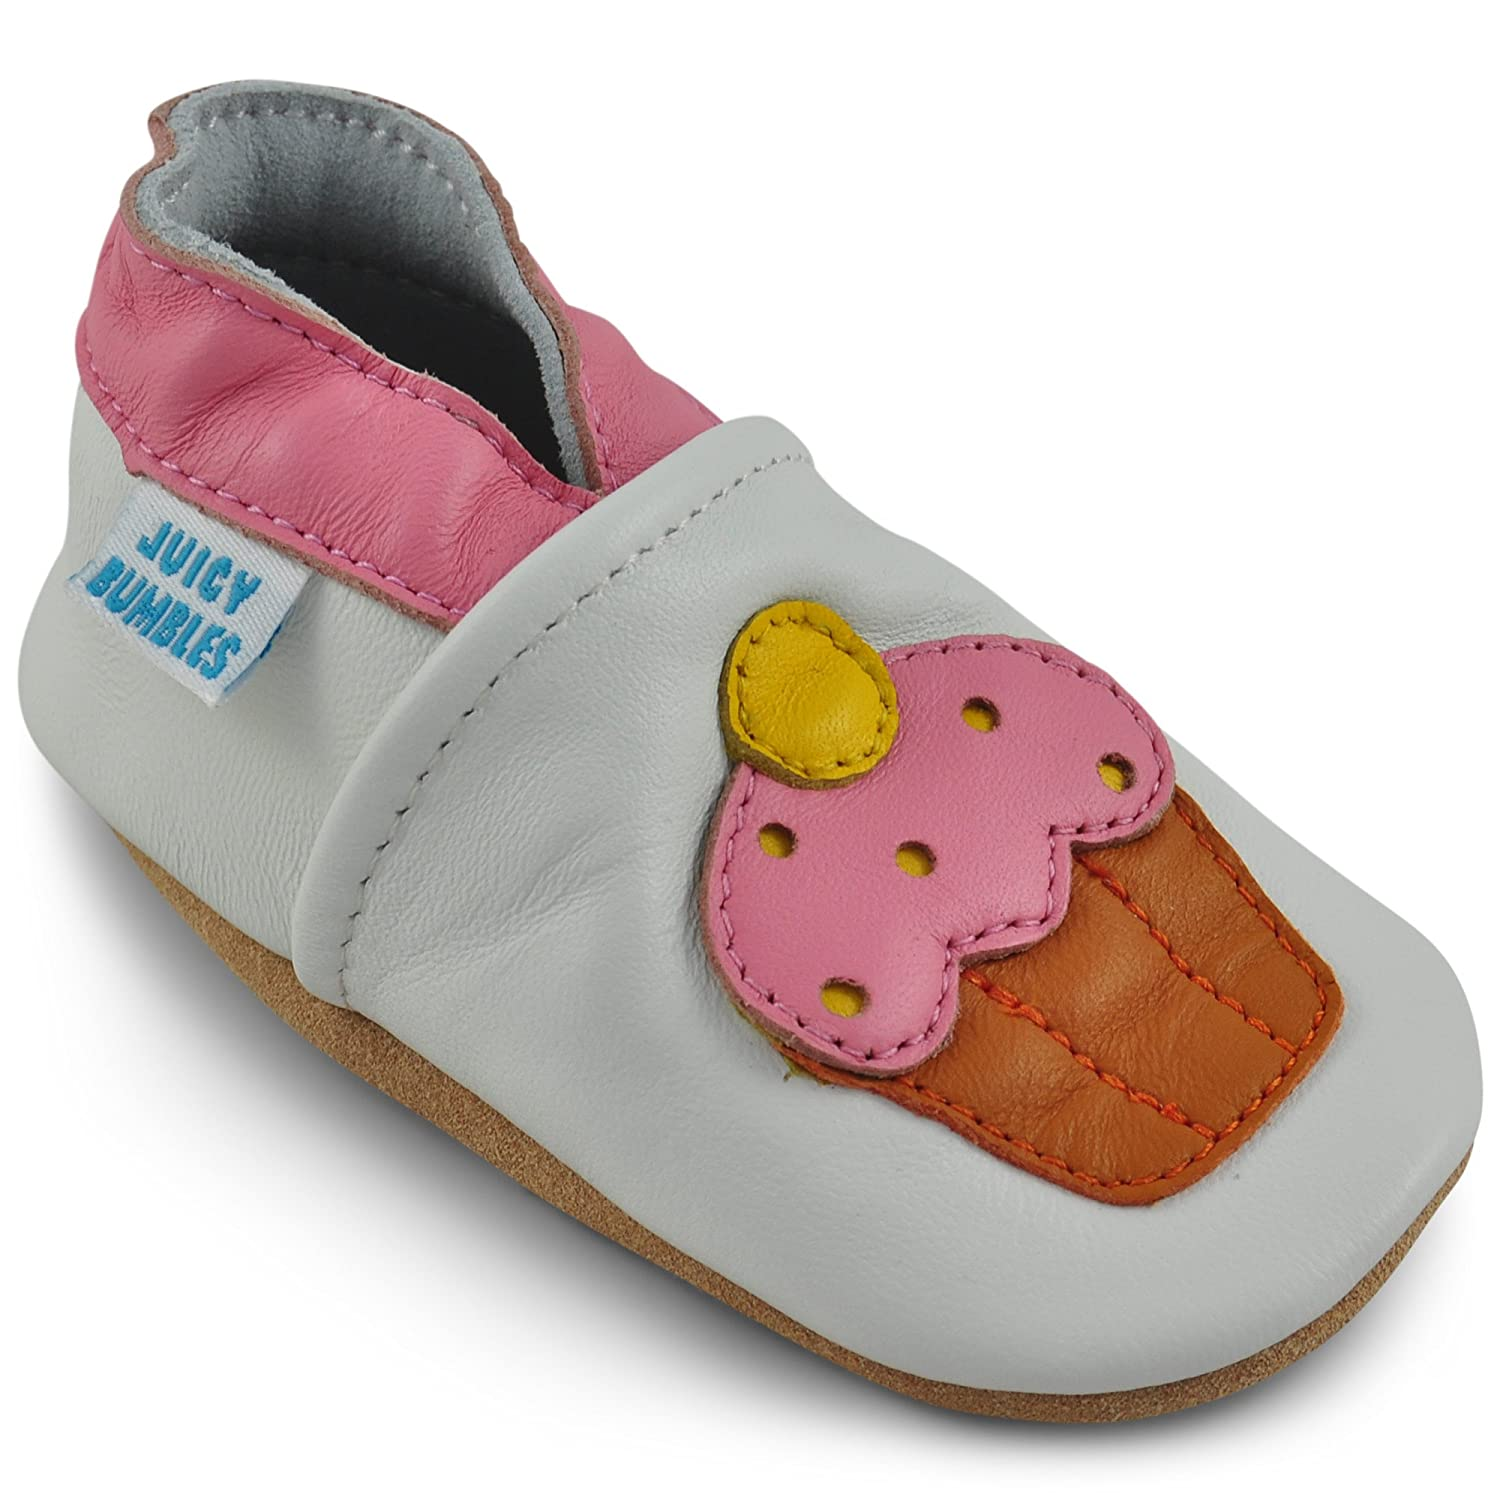 9d854850f54b Petit Marin Beautiful Soft Leather Baby Shoes with Suede Soles - Toddler/Infant  Shoes - Crib Shoes - Baby First Walking Shoes - Pre-Walker Shoes - 45 ...